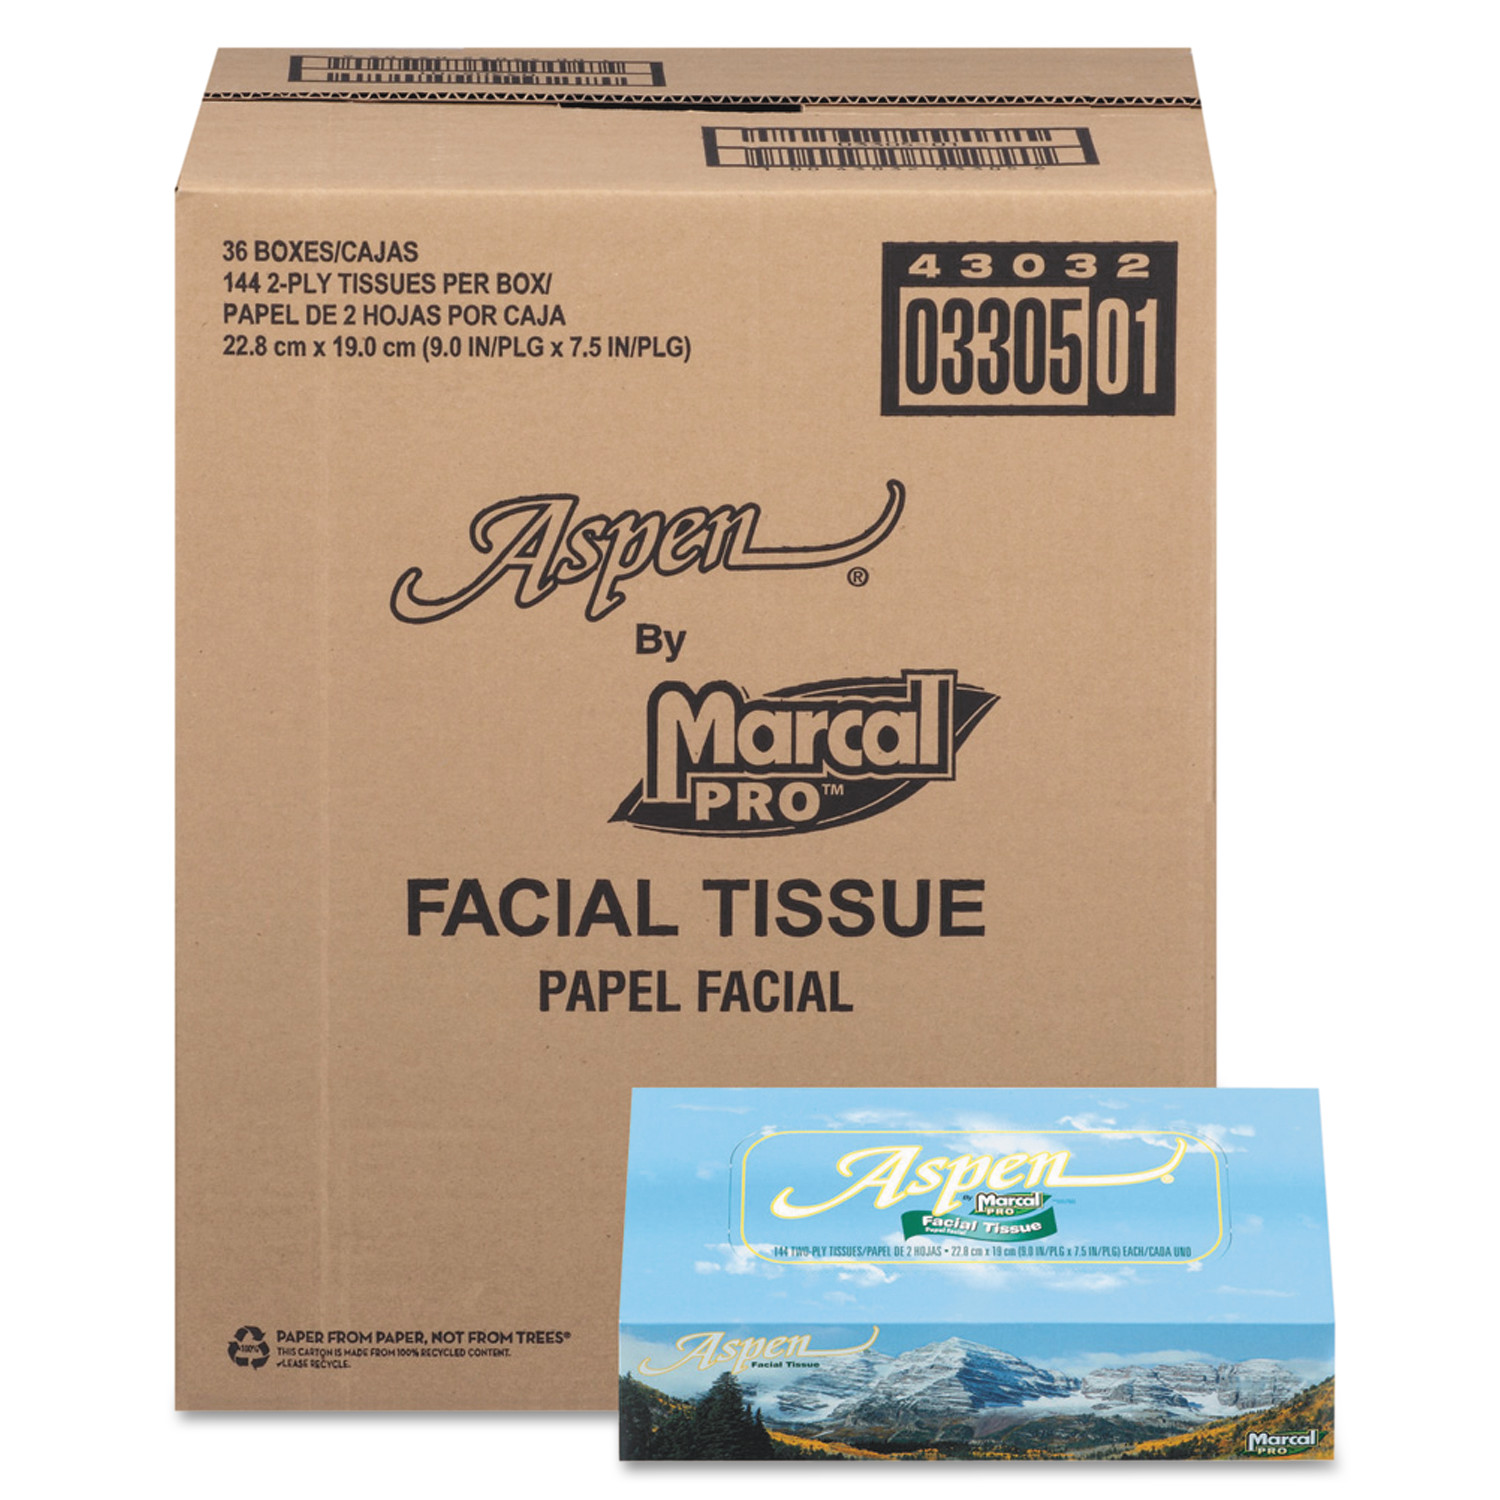 Marcal Pro Aspen 2-Ply Facial Tissue 144 Ct Box